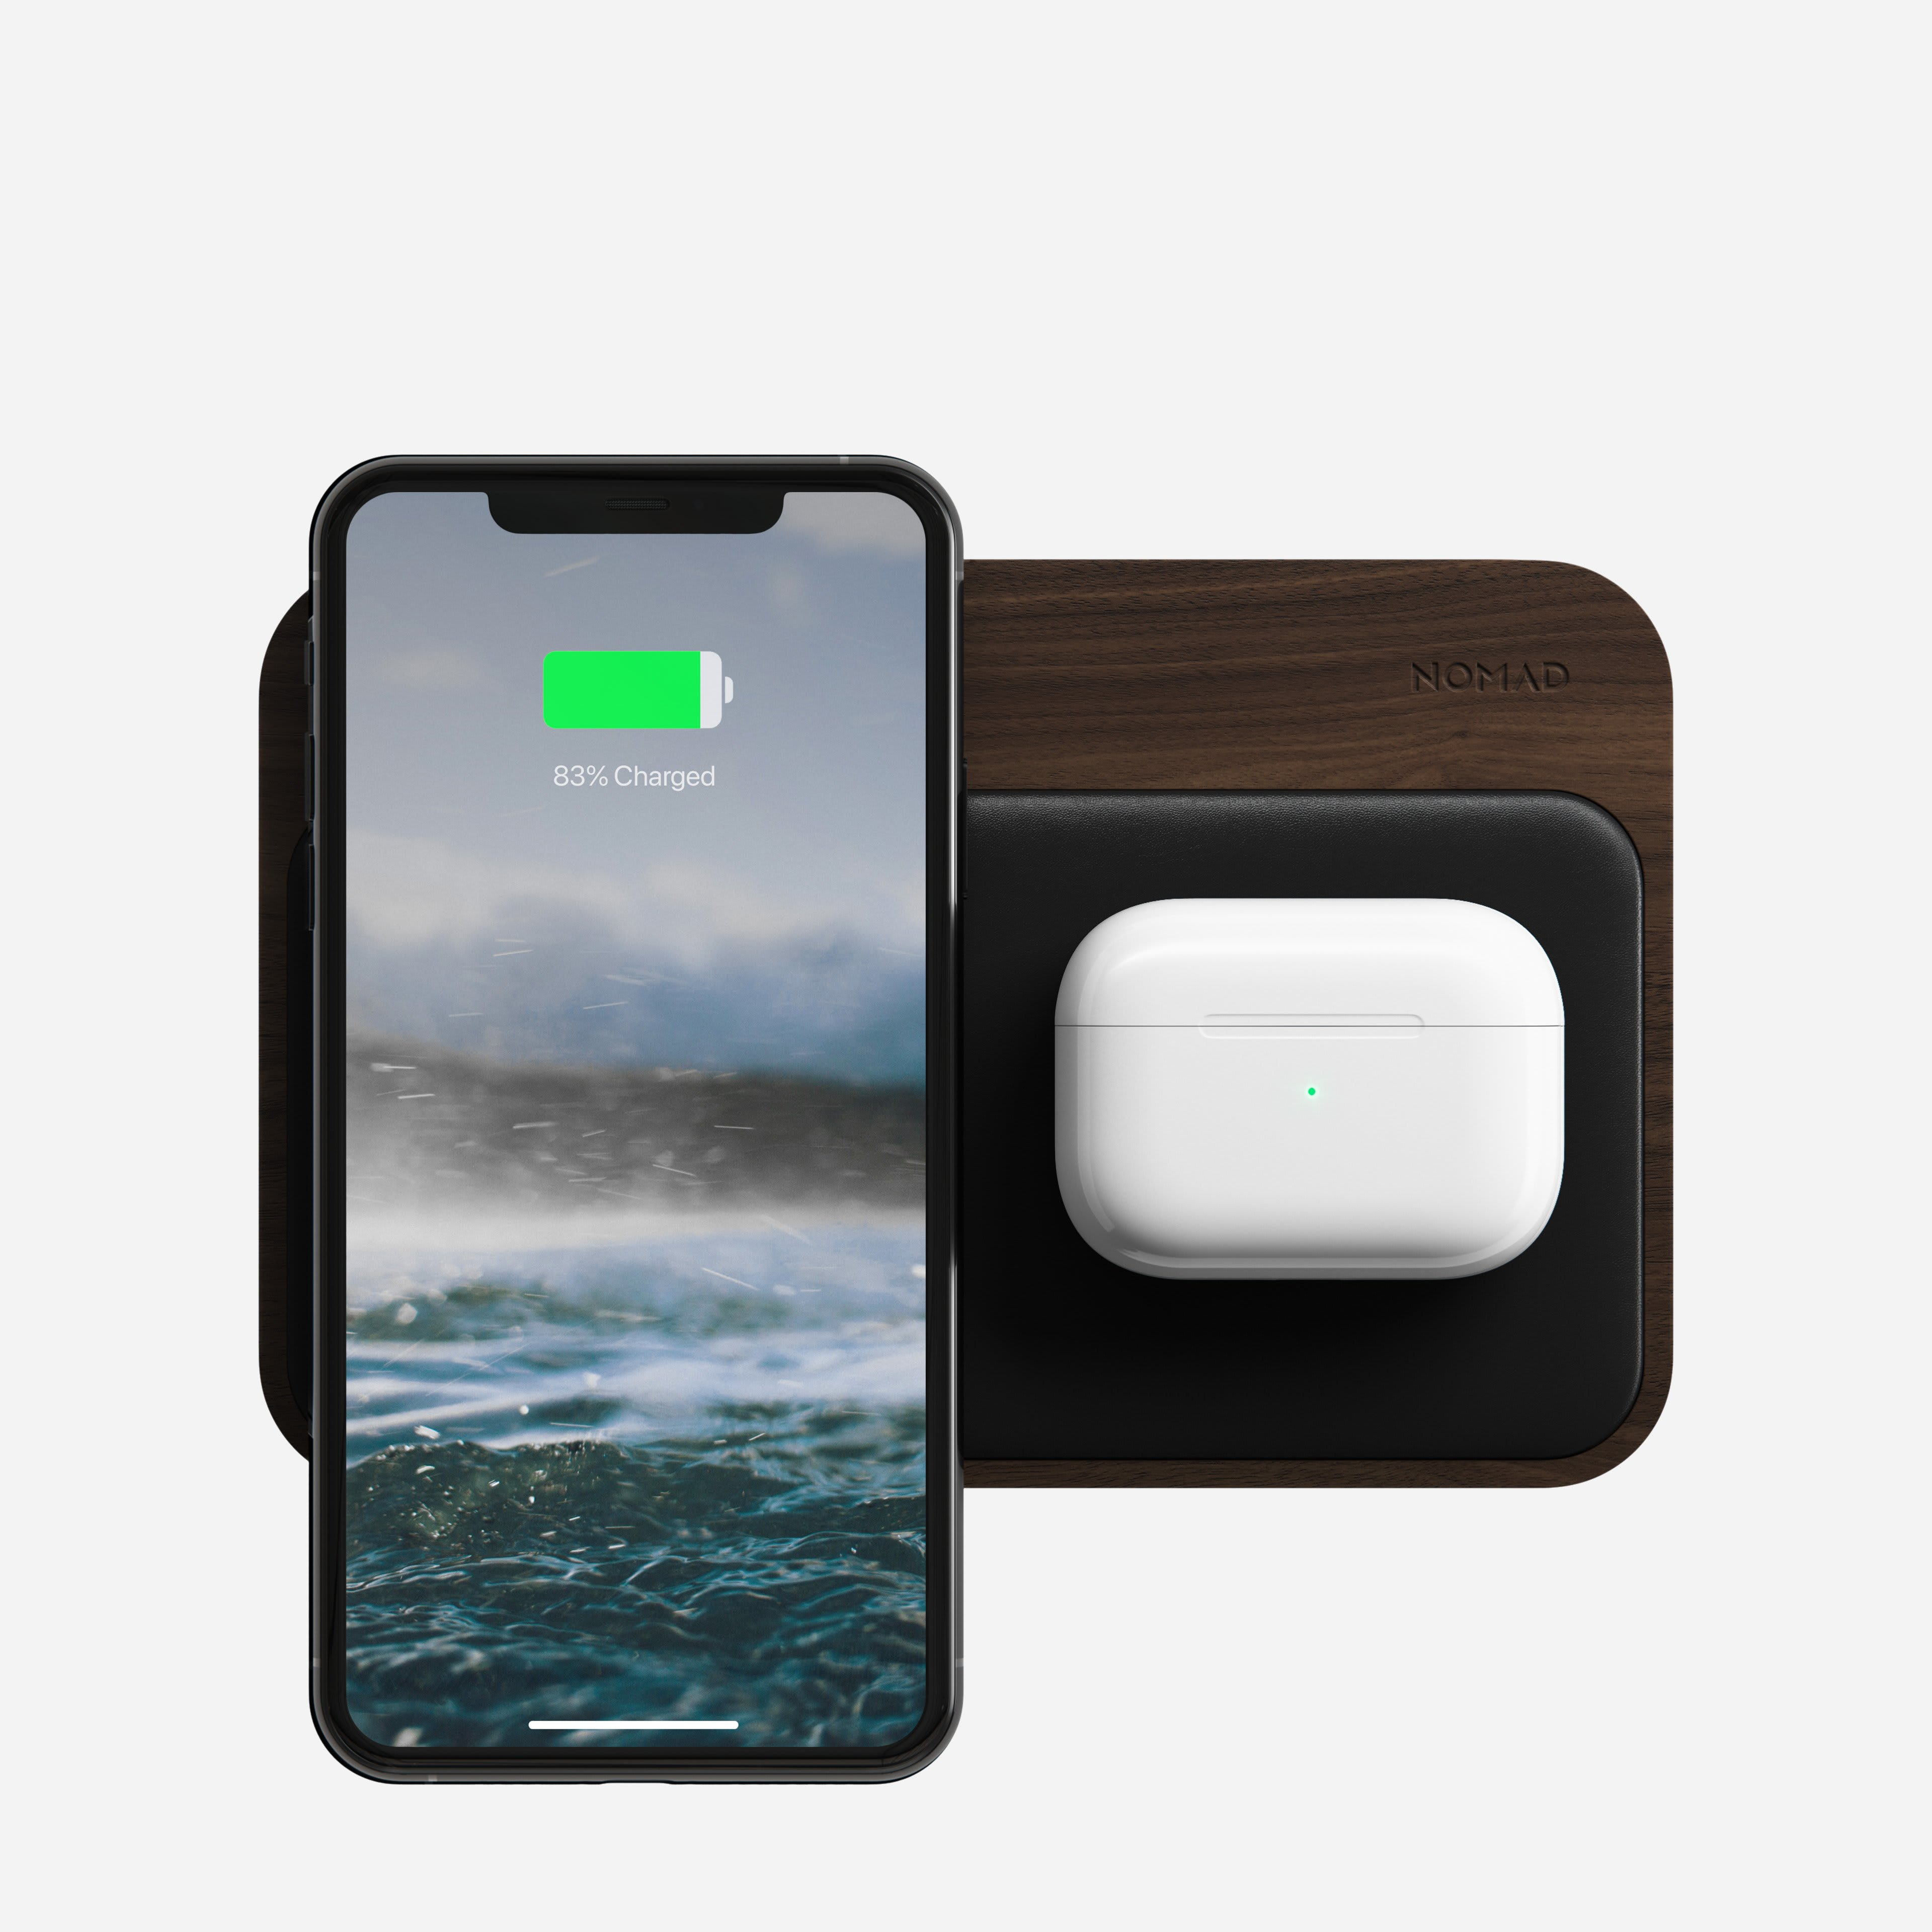 Base Station Hub Walnut with iPhone and AirPods charging